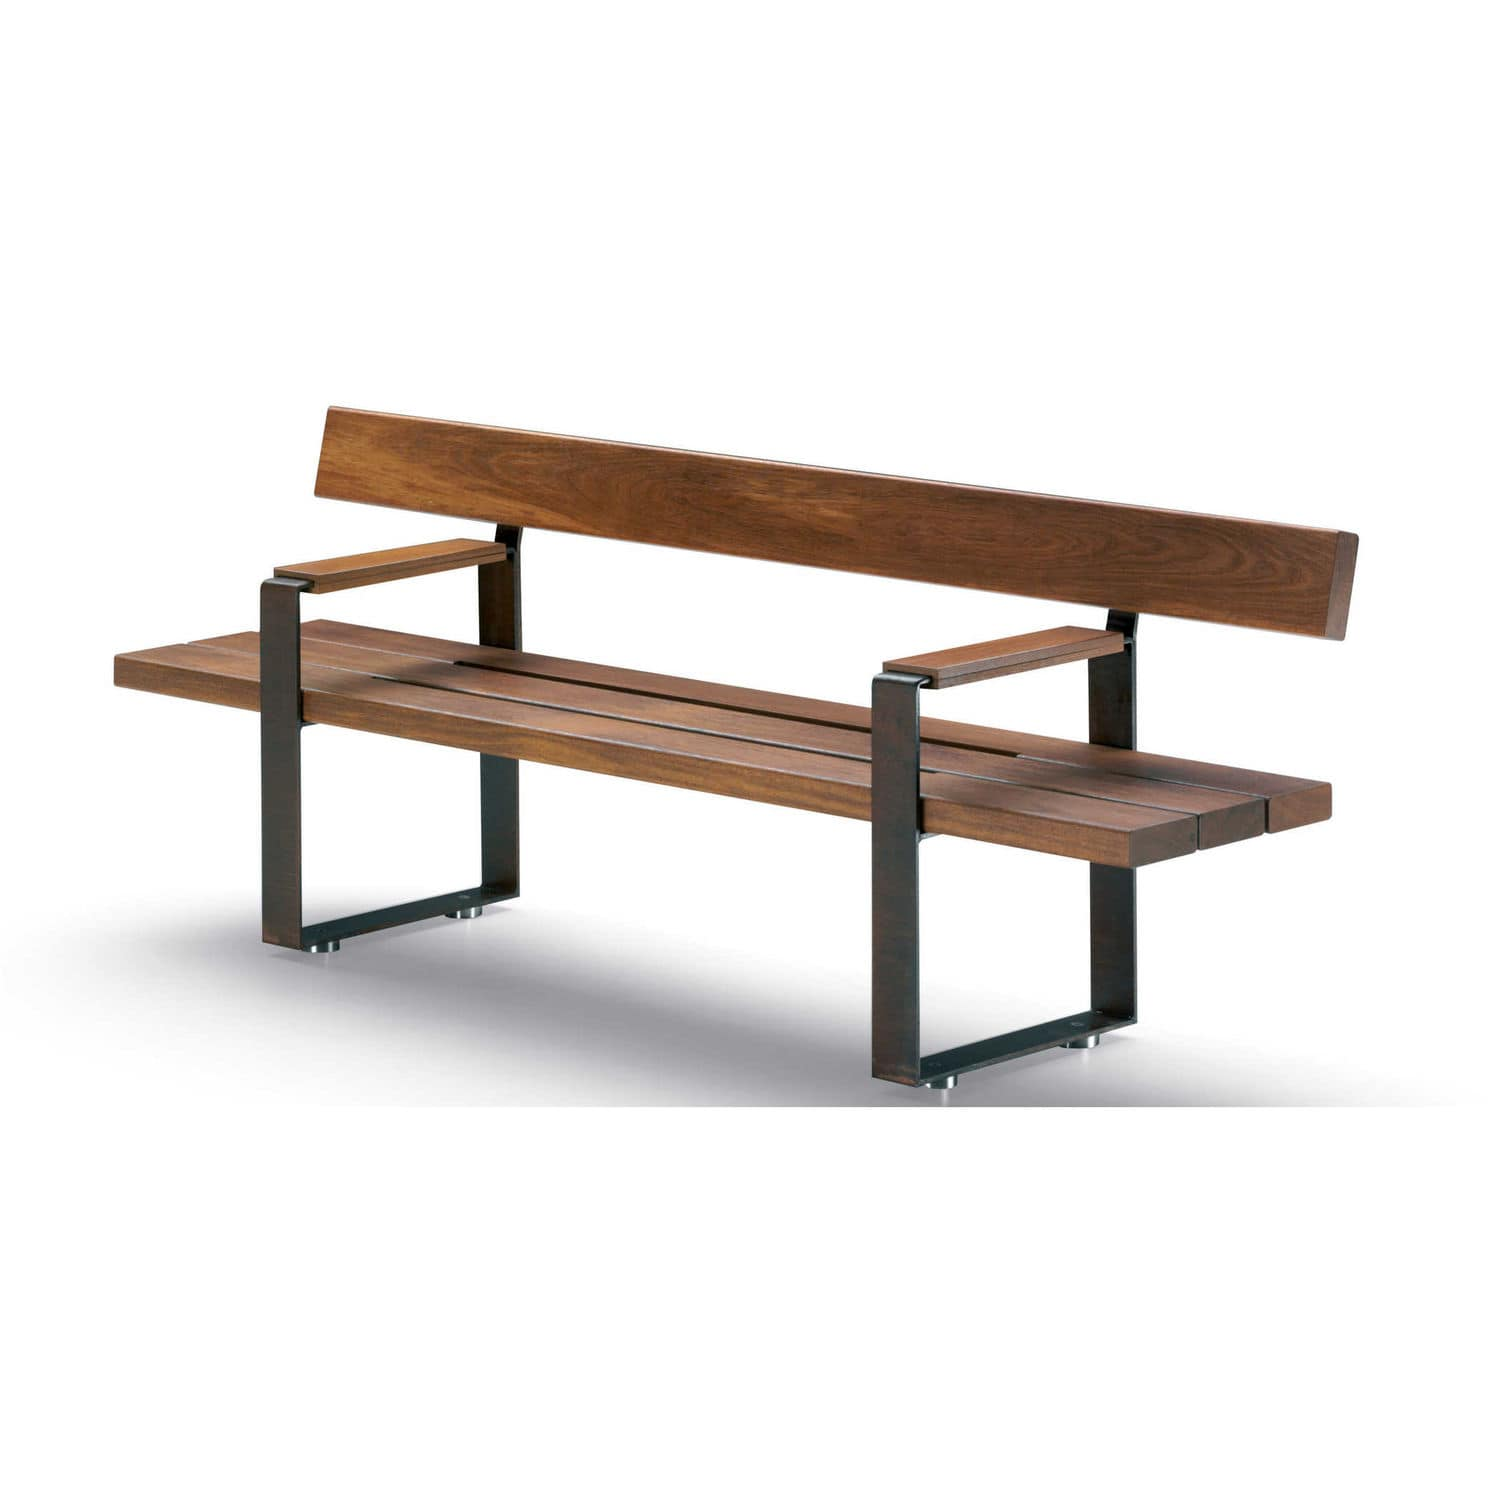 Picture of: Public Bench Bull Metalco Contemporary Wooden Metal